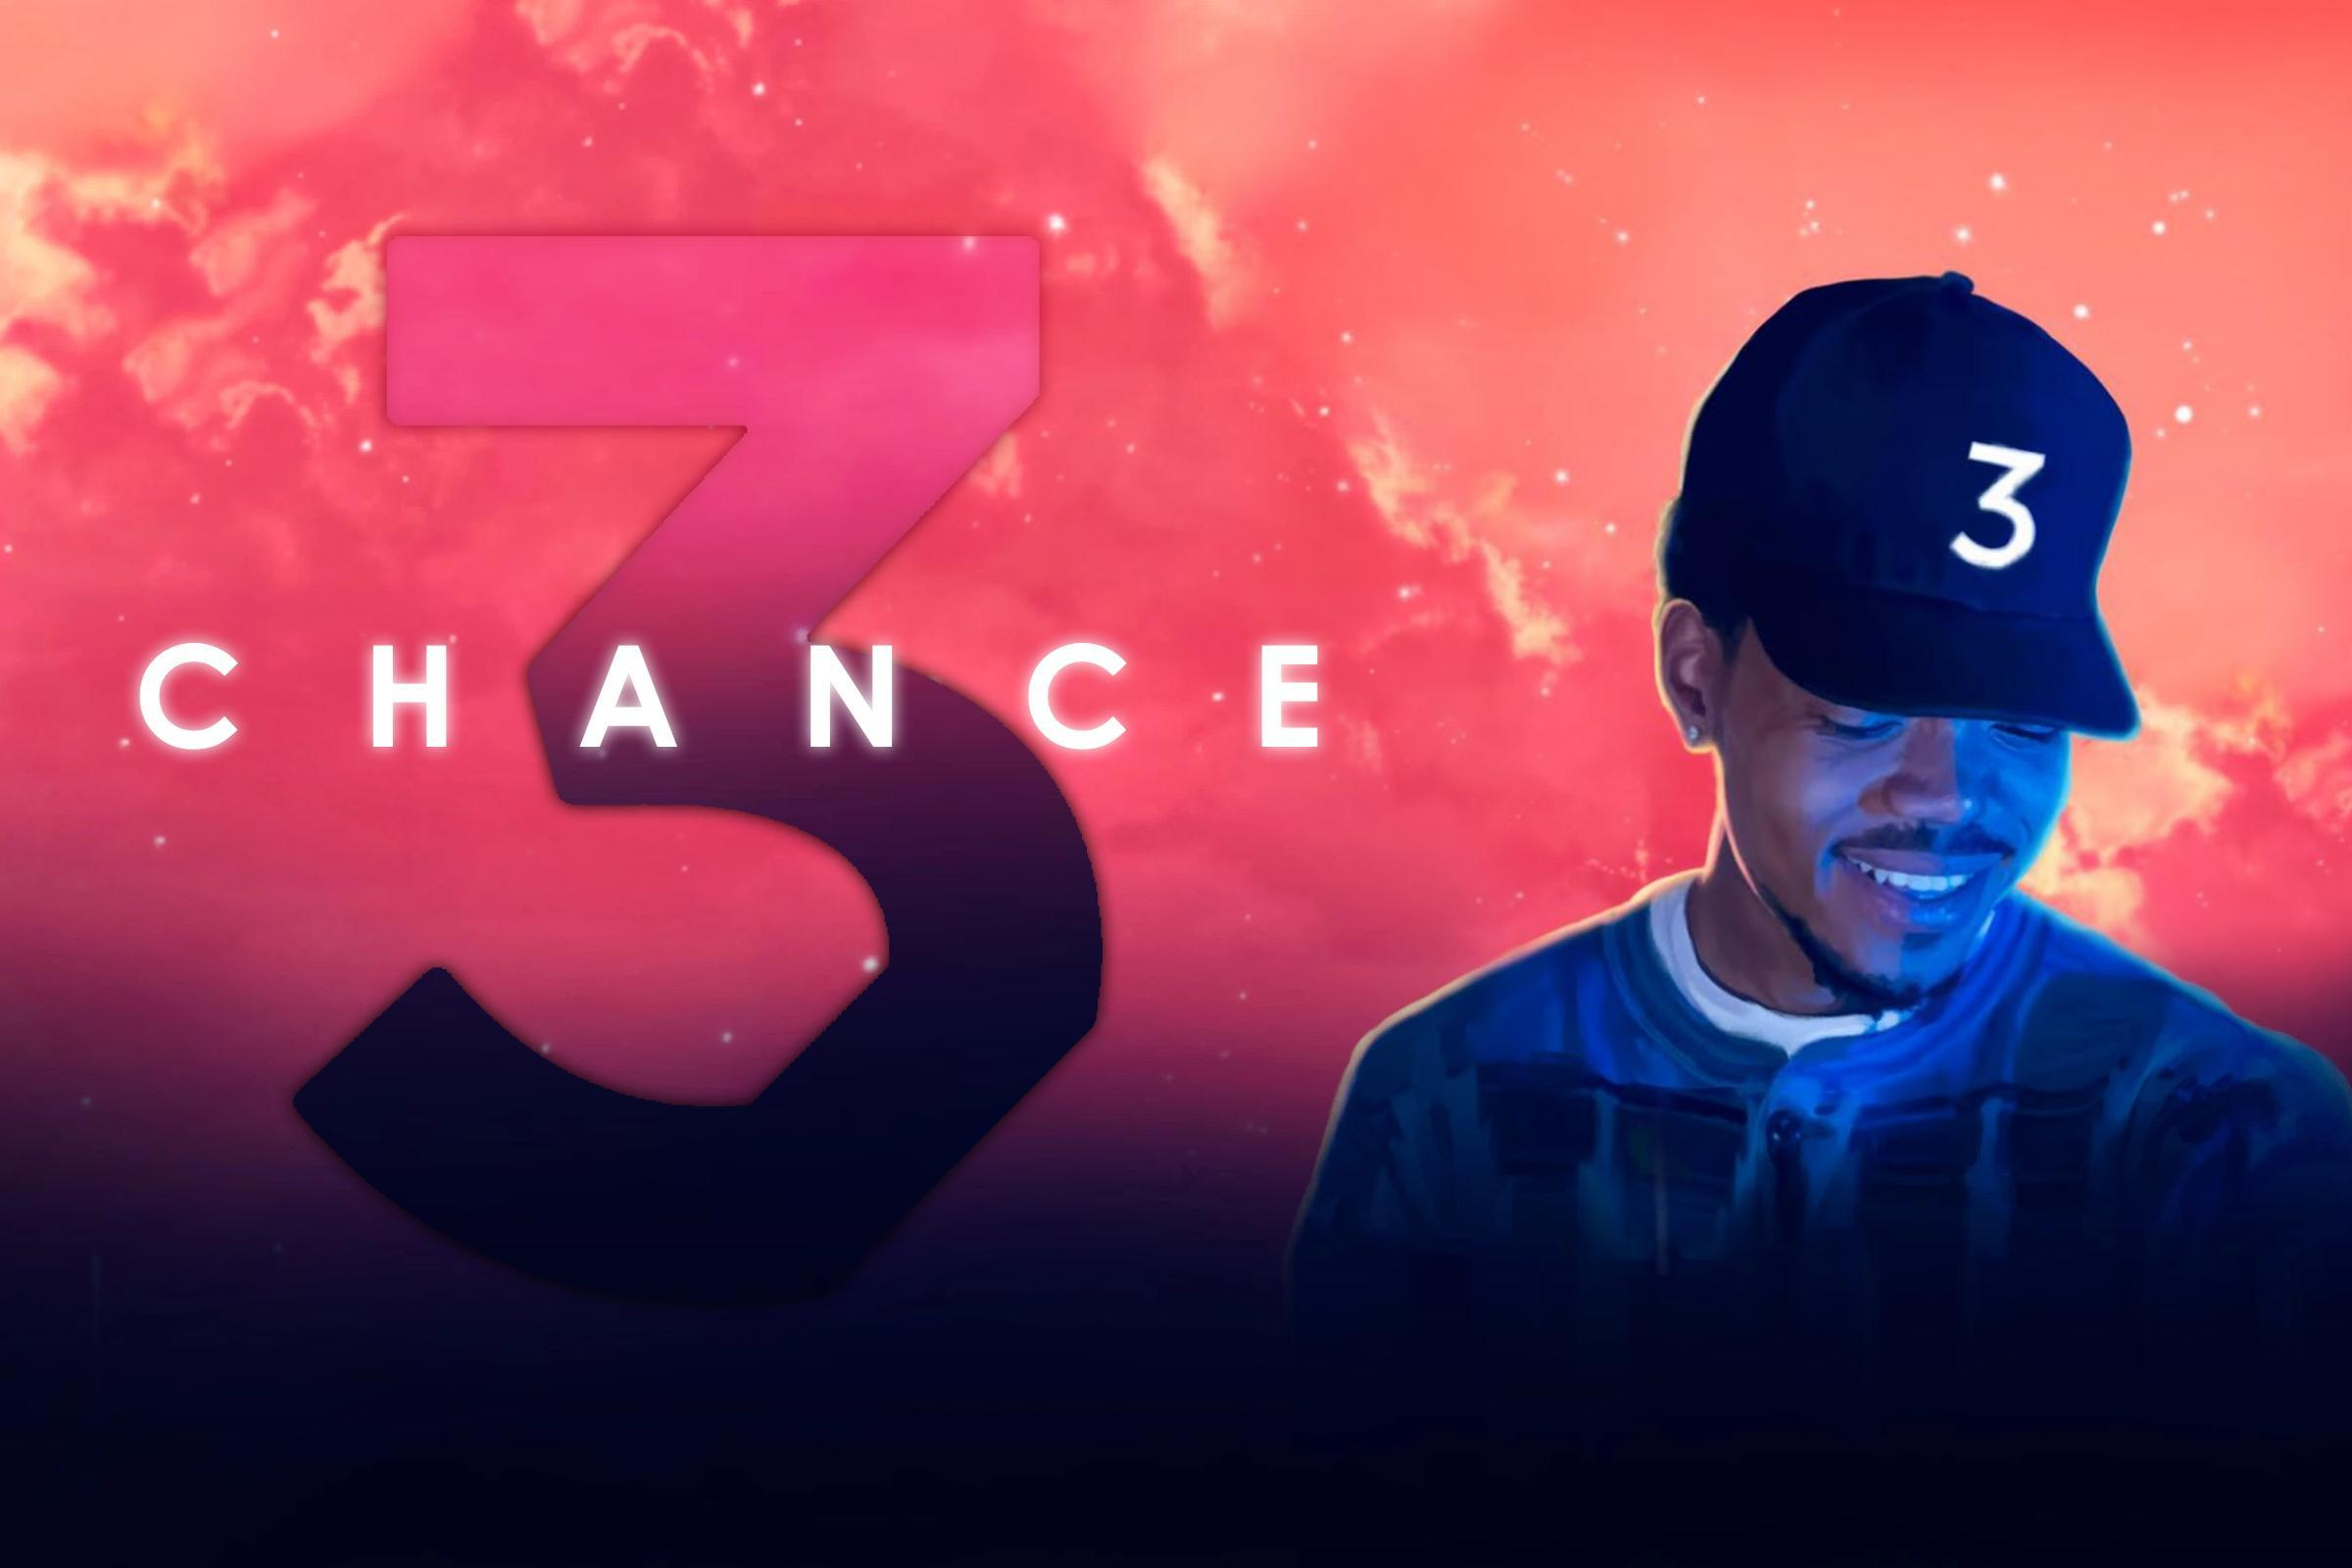 Download Best HD Chance The Rapper Wallpapers